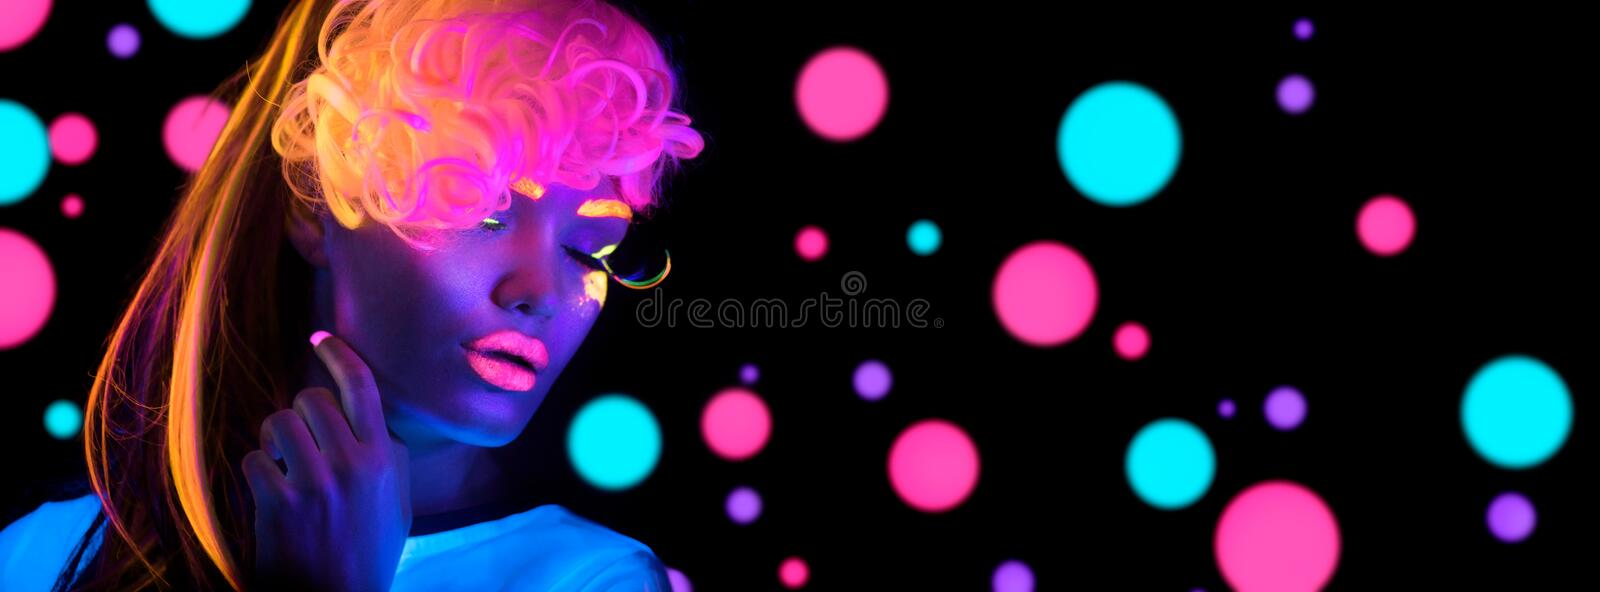 Fashion disco woman. Dancing model in neon light, portrait of beauty girl with fluorescent makeup stock photo